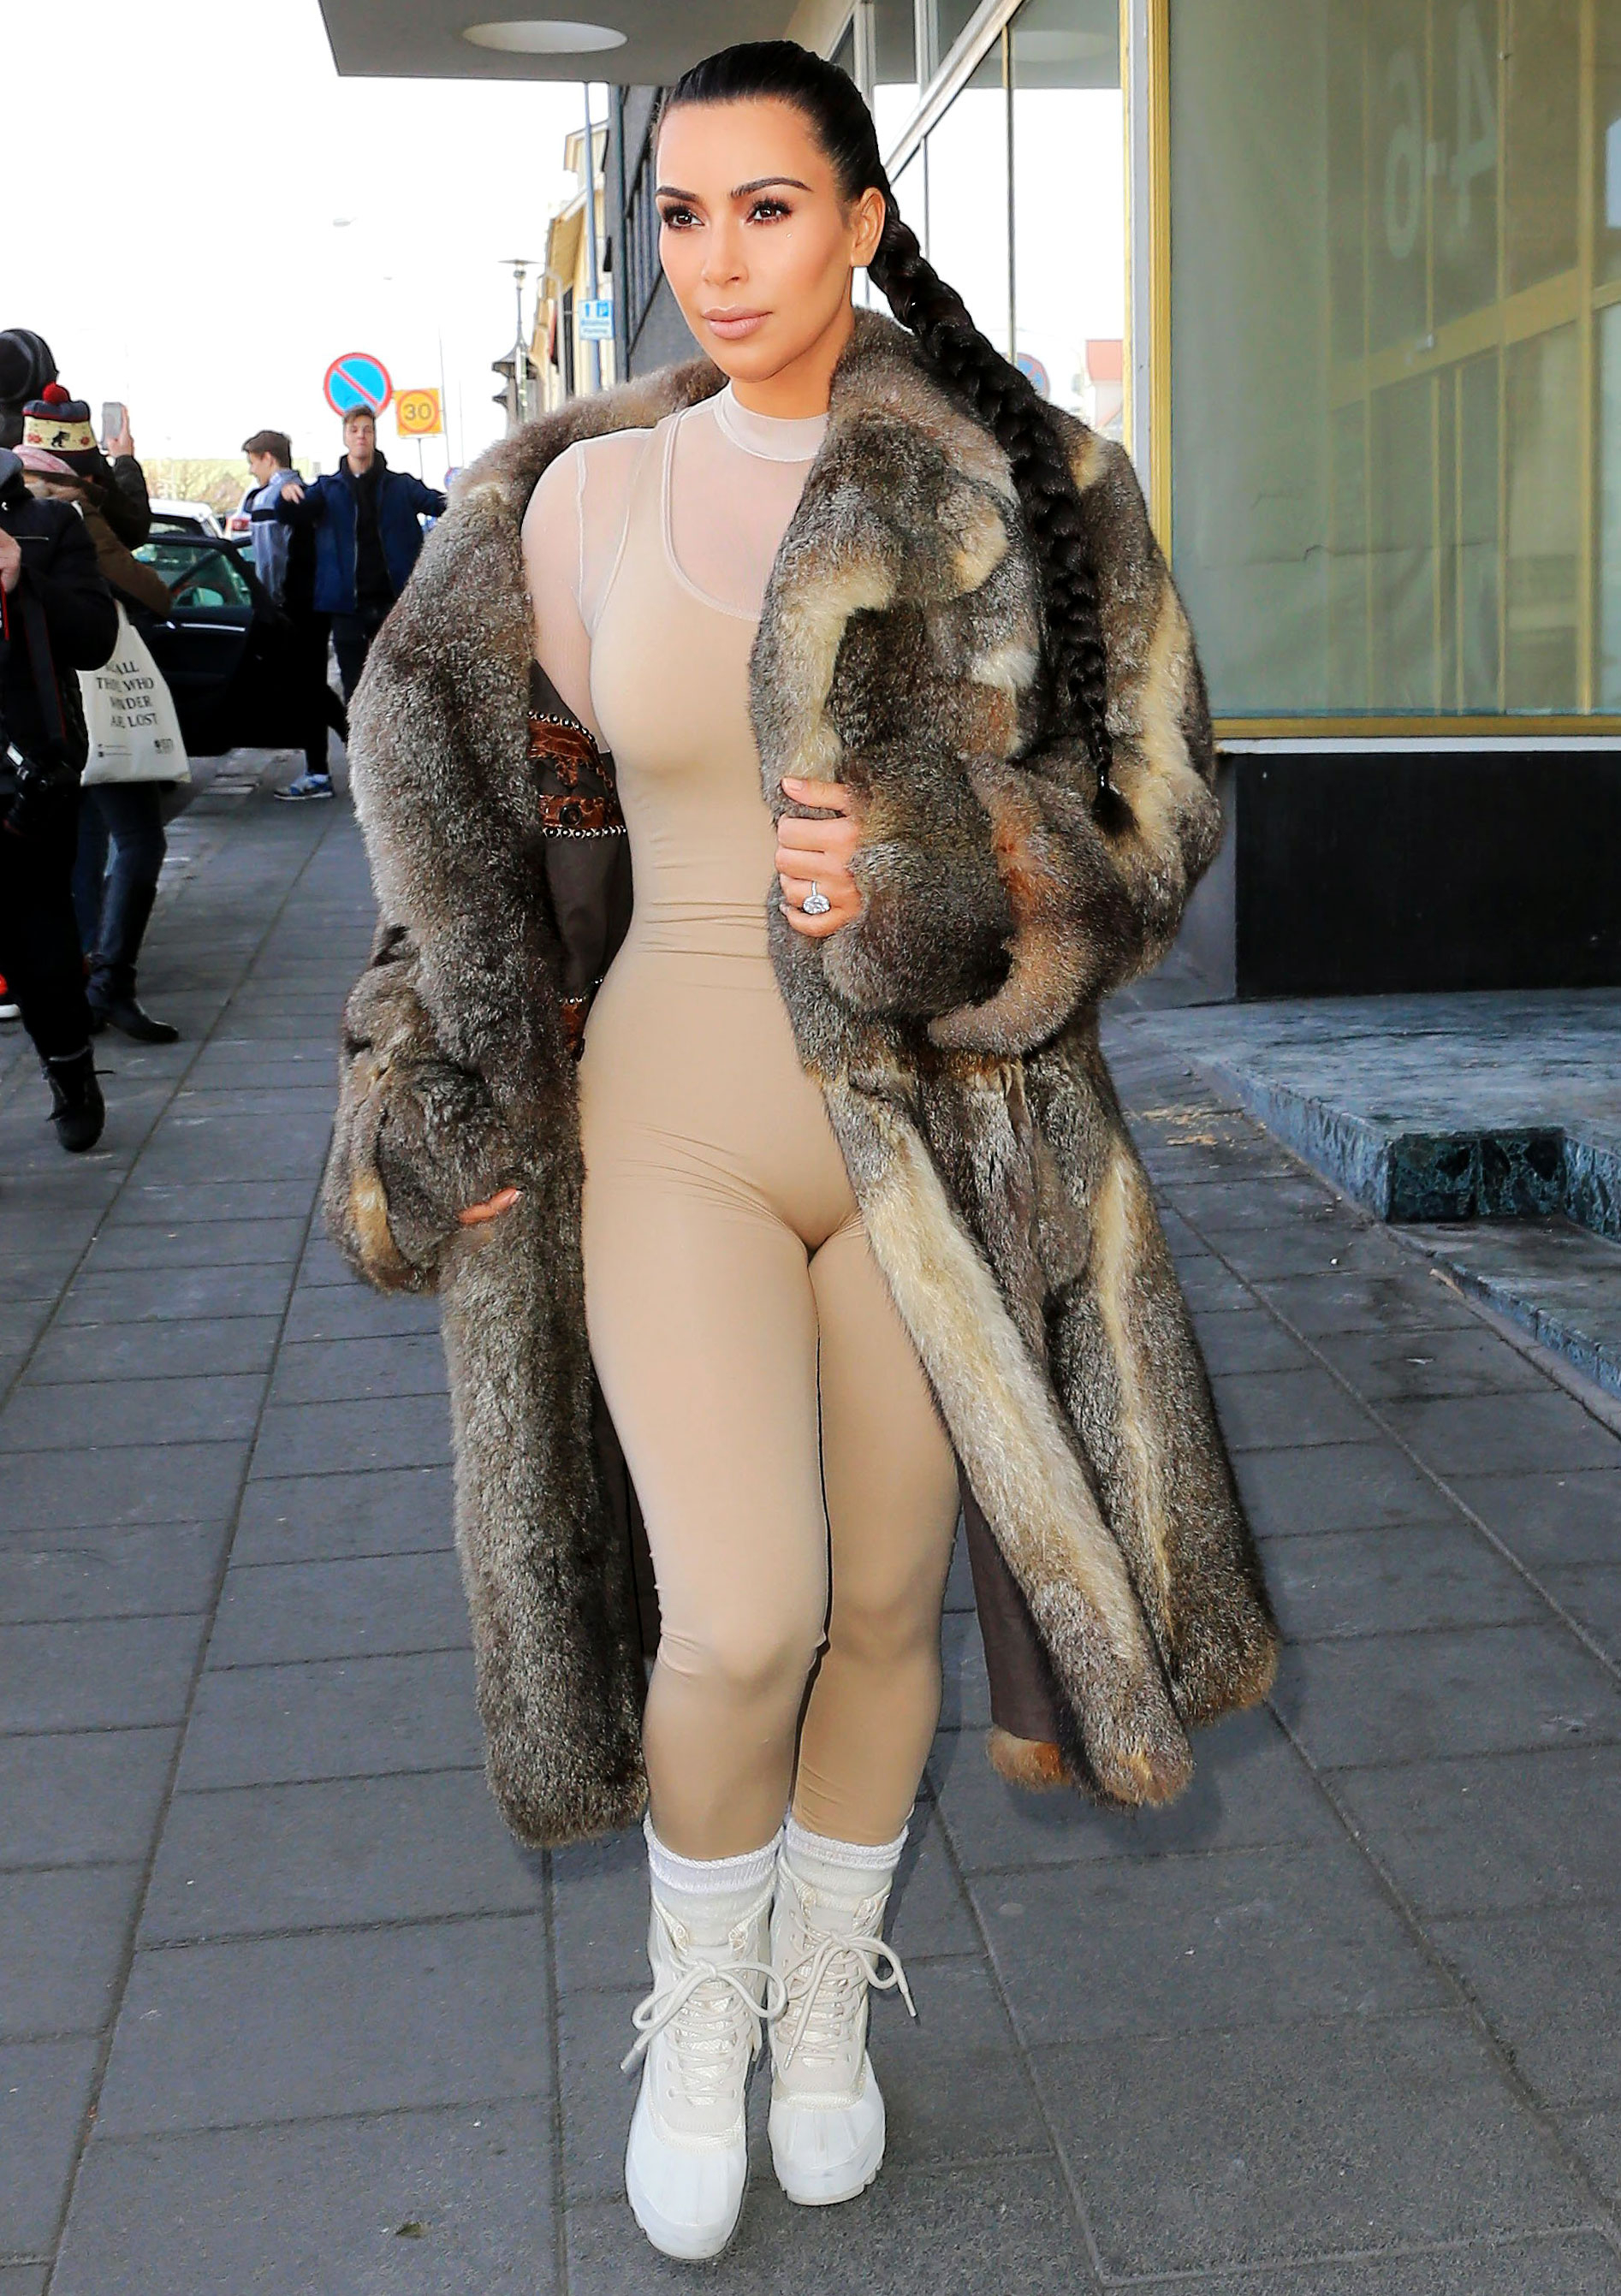 Kim Kardashian visiting Iceland in a nude bodysuit. Splash News Online